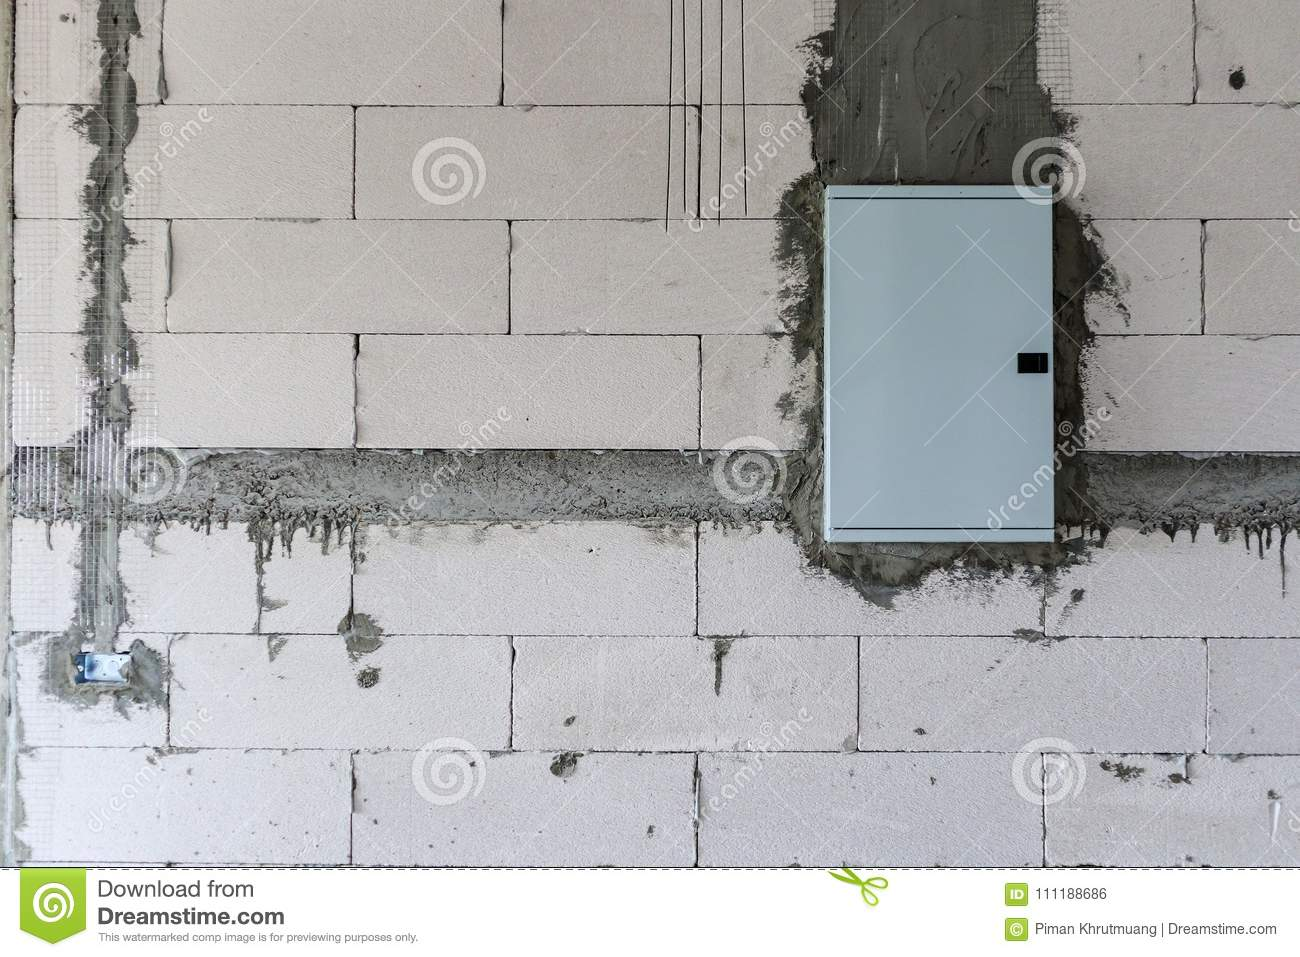 House Construction Interior With Electric Box Stock Photo - Image of ...